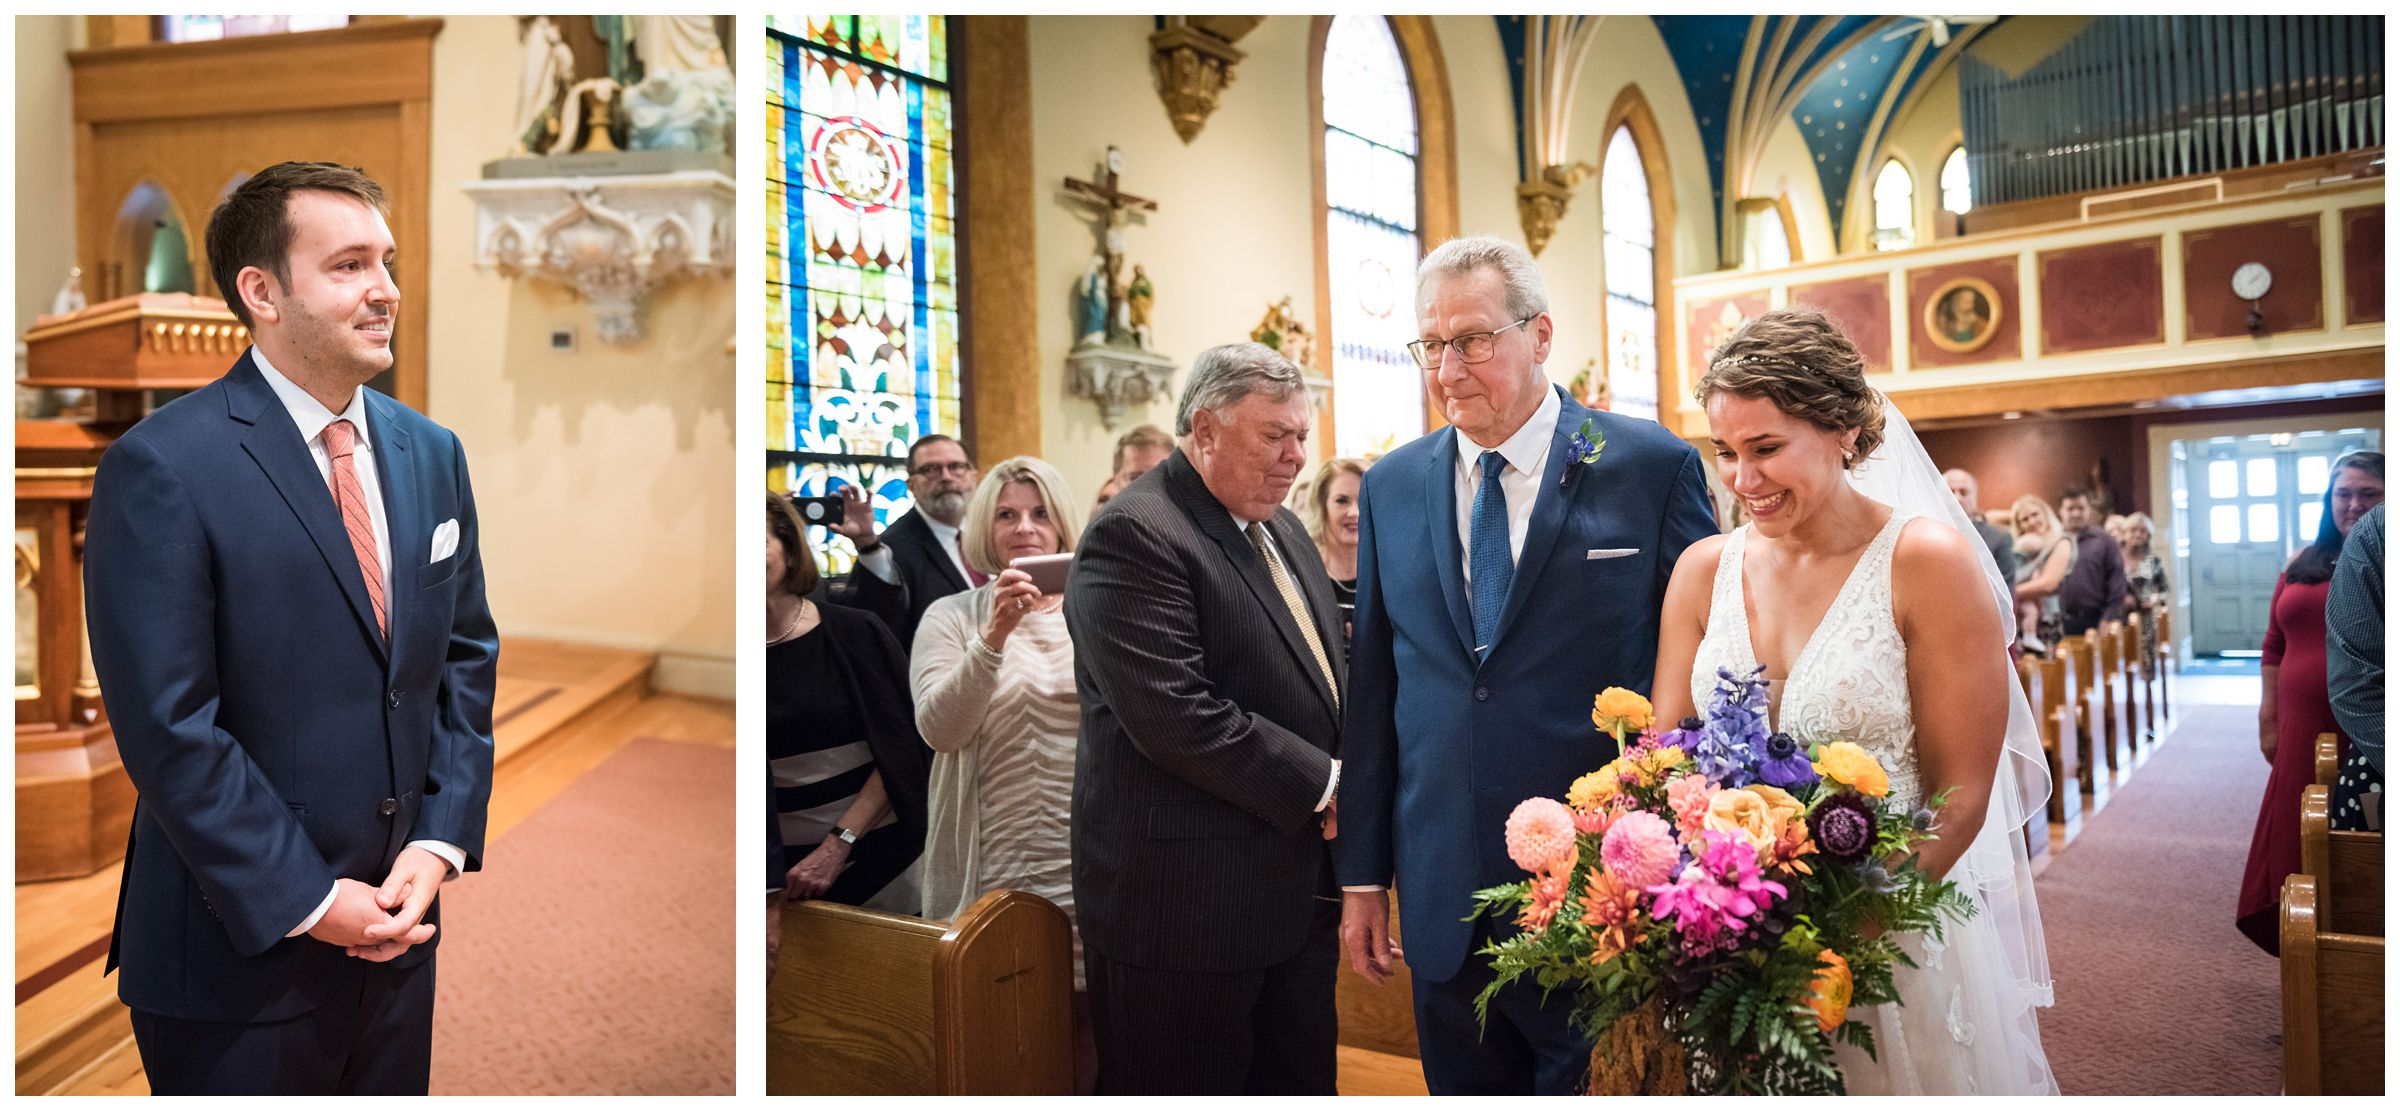 bride walking down the aisle and groom's reaction during wedding ceremony at St. John the Baptist Catholic Church in Columbus, Ohio